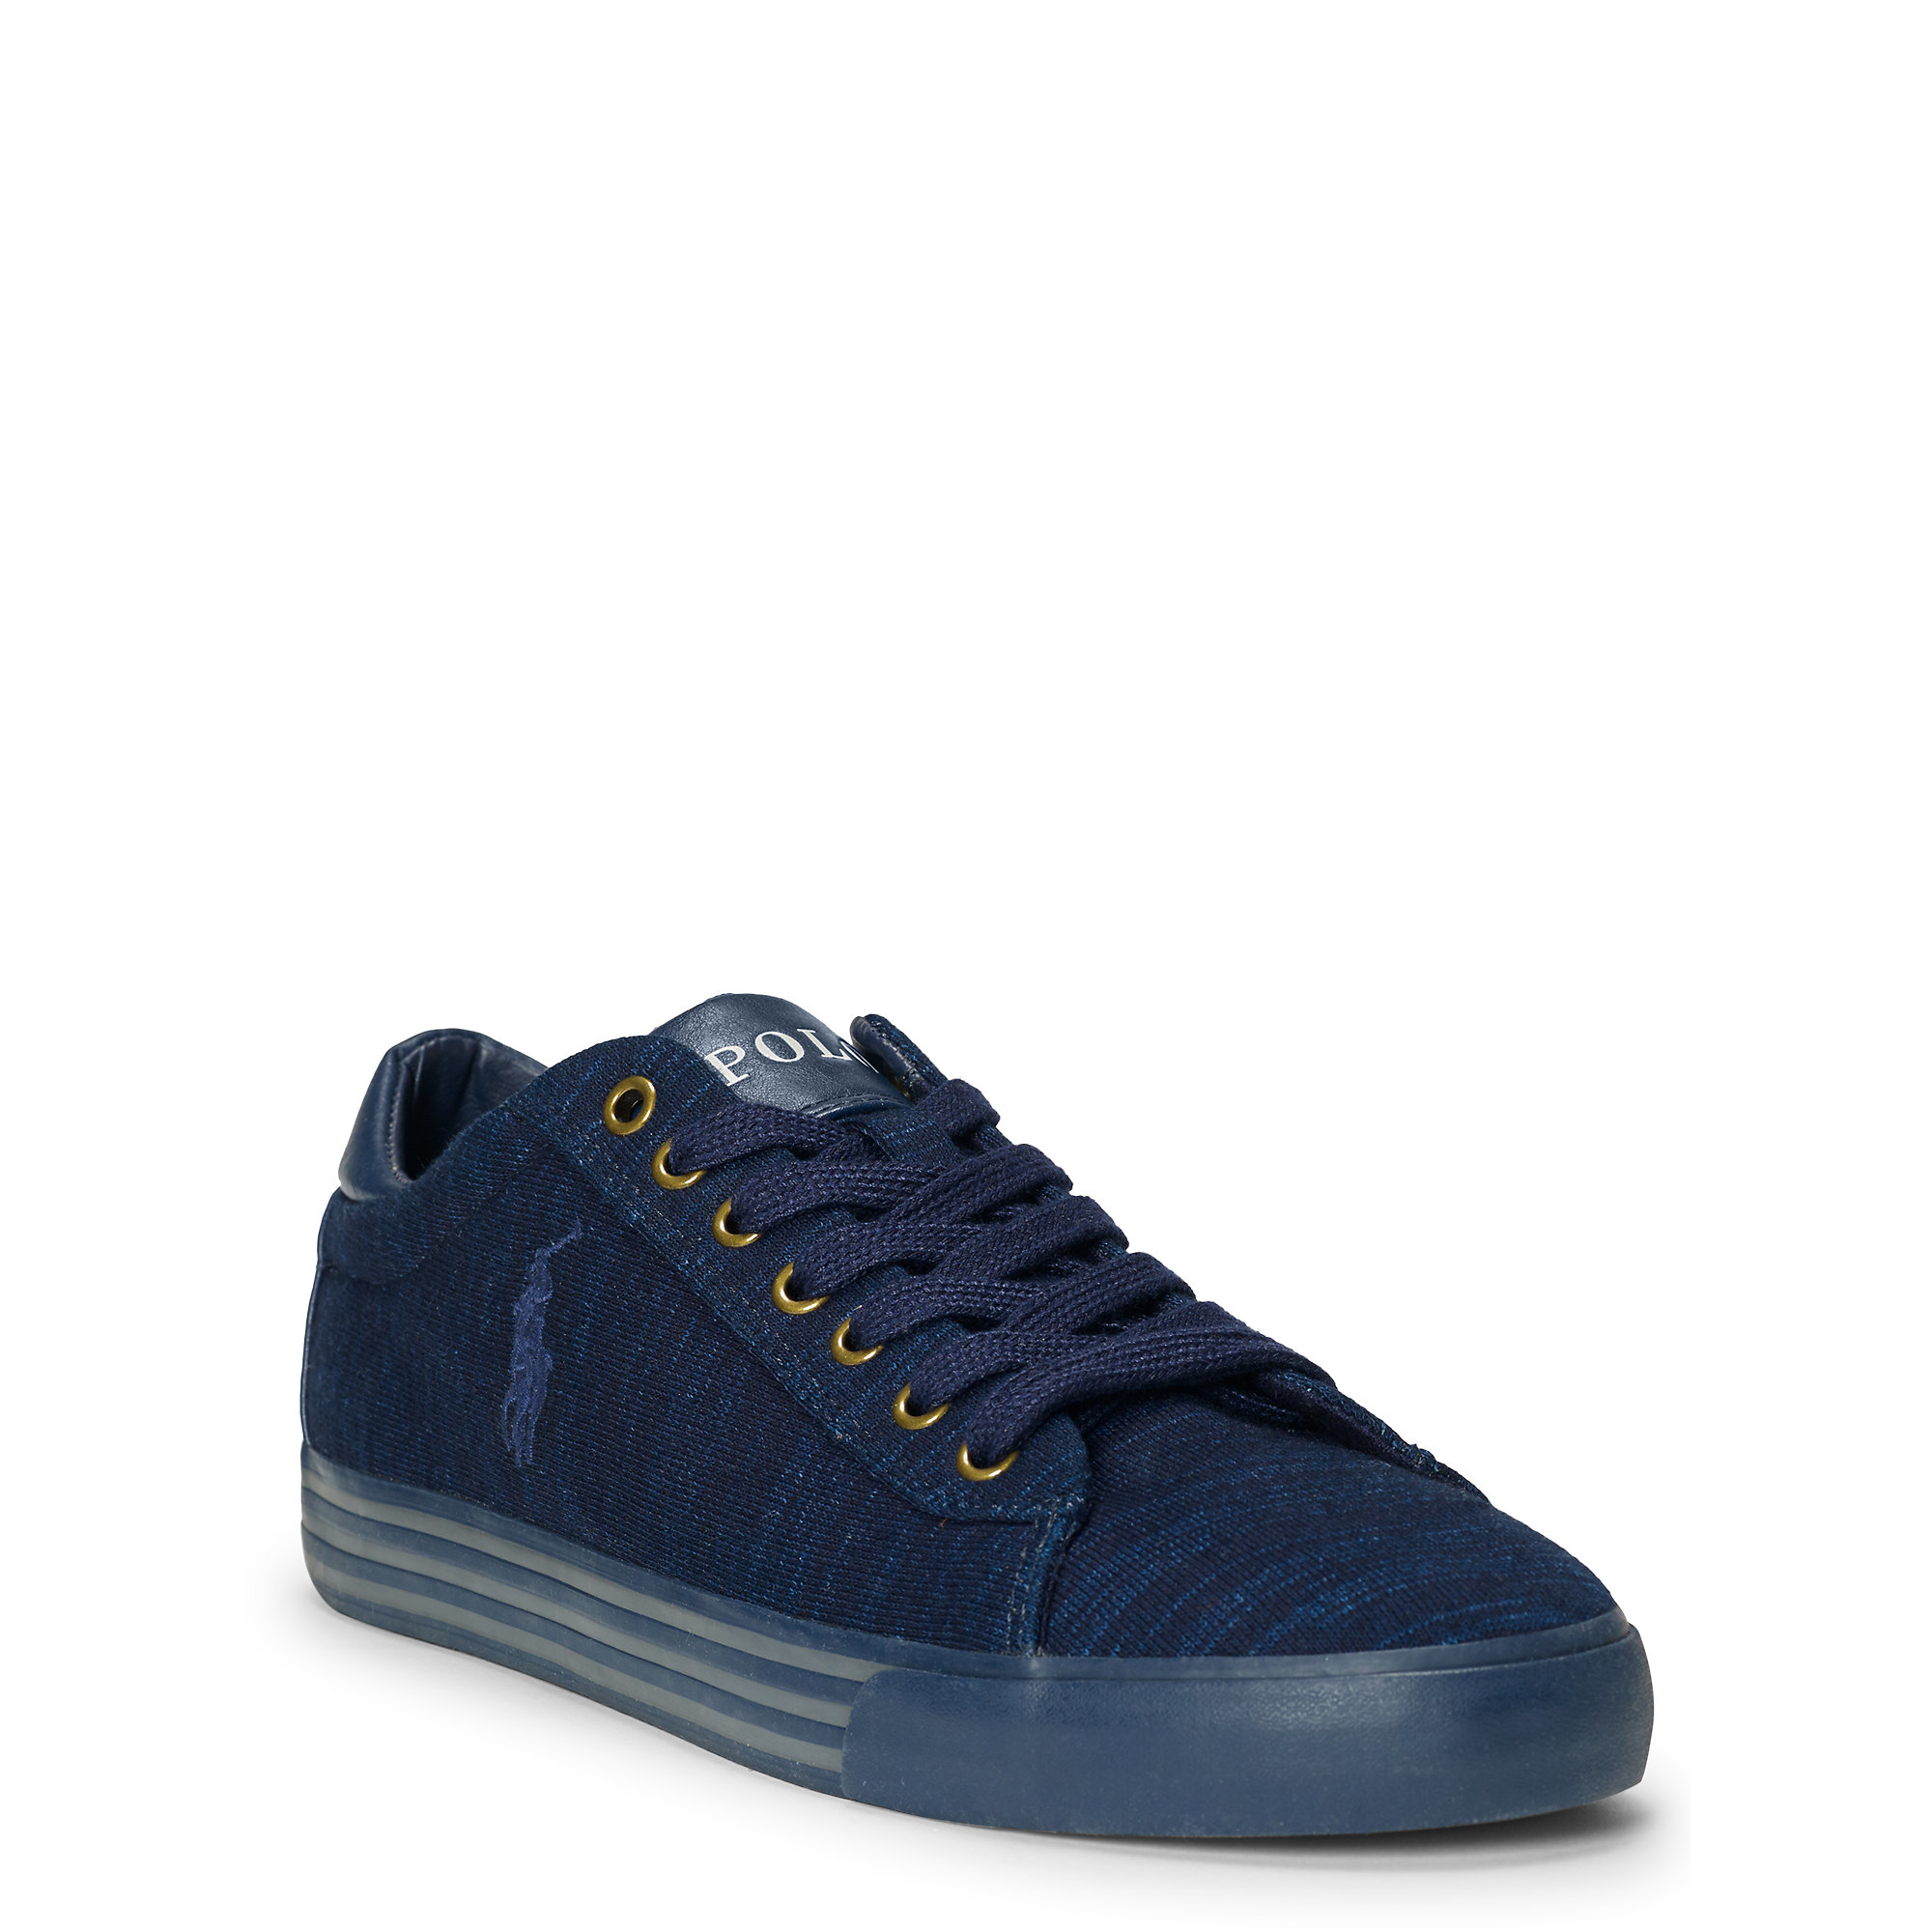 Harvey sneakers - Blue Polo Ralph Lauren 7KqyKa